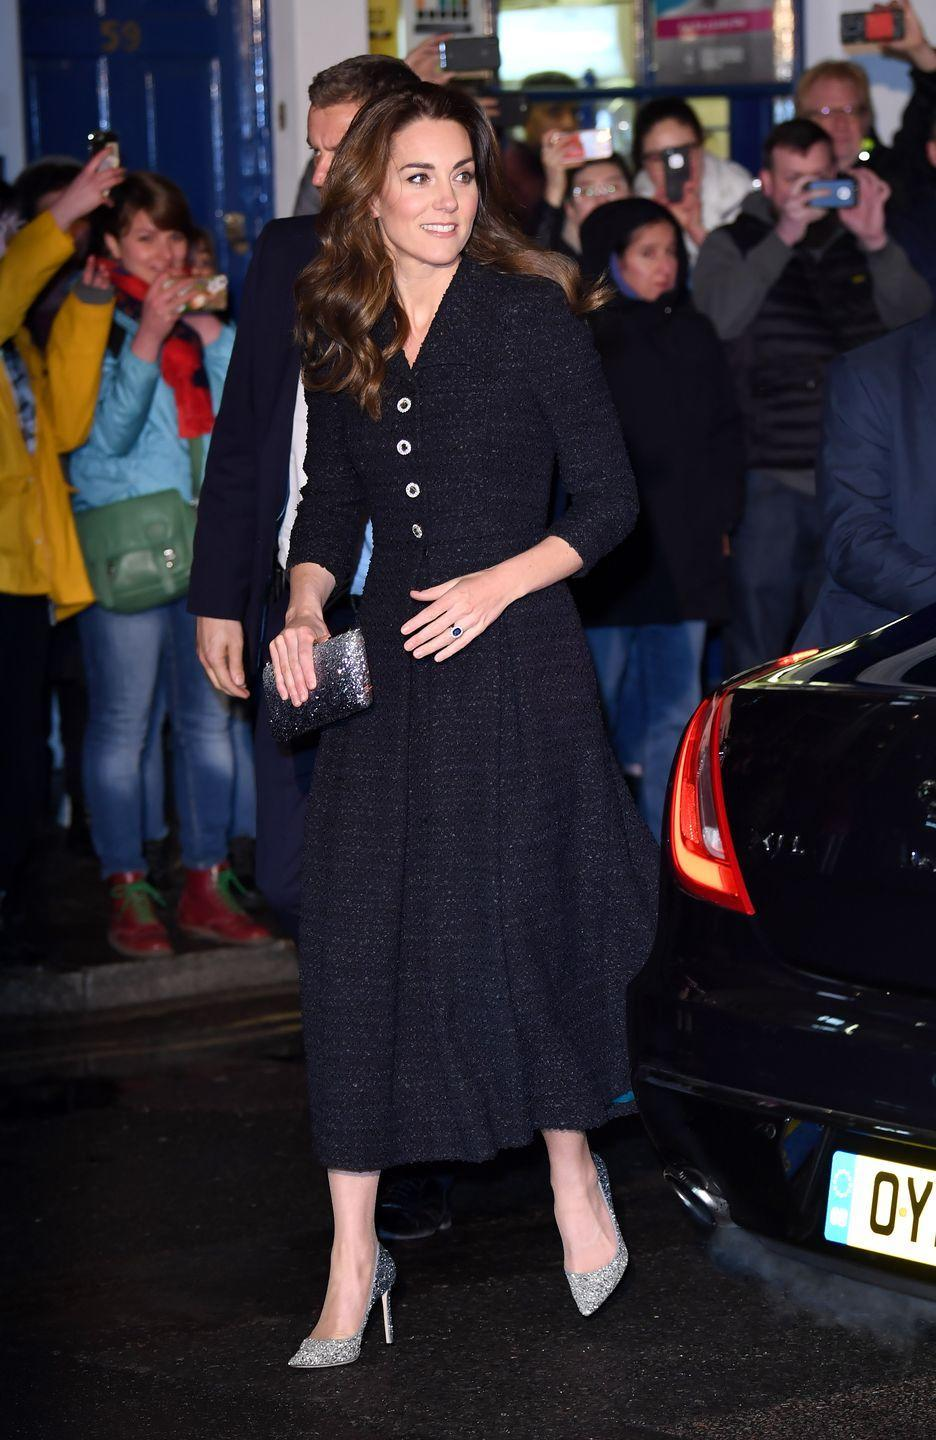 "<p>In London, <a href=""https://www.townandcountrymag.com/society/tradition/a31081862/kate-middleton-eponine-dress-dear-evan-hansen-photos/"" rel=""nofollow noopener"" target=""_blank"" data-ylk=""slk:the Duchess attended a charity performance"" class=""link rapid-noclick-resp"">the Duchess attended a charity performance</a> of <em>Dear Evan Hansen</em>, in support of The Royal Foundation. For the event, Kate chose an Eponine dress and sparkly silver stilettos, believed to be Jimmy Choos. </p>"